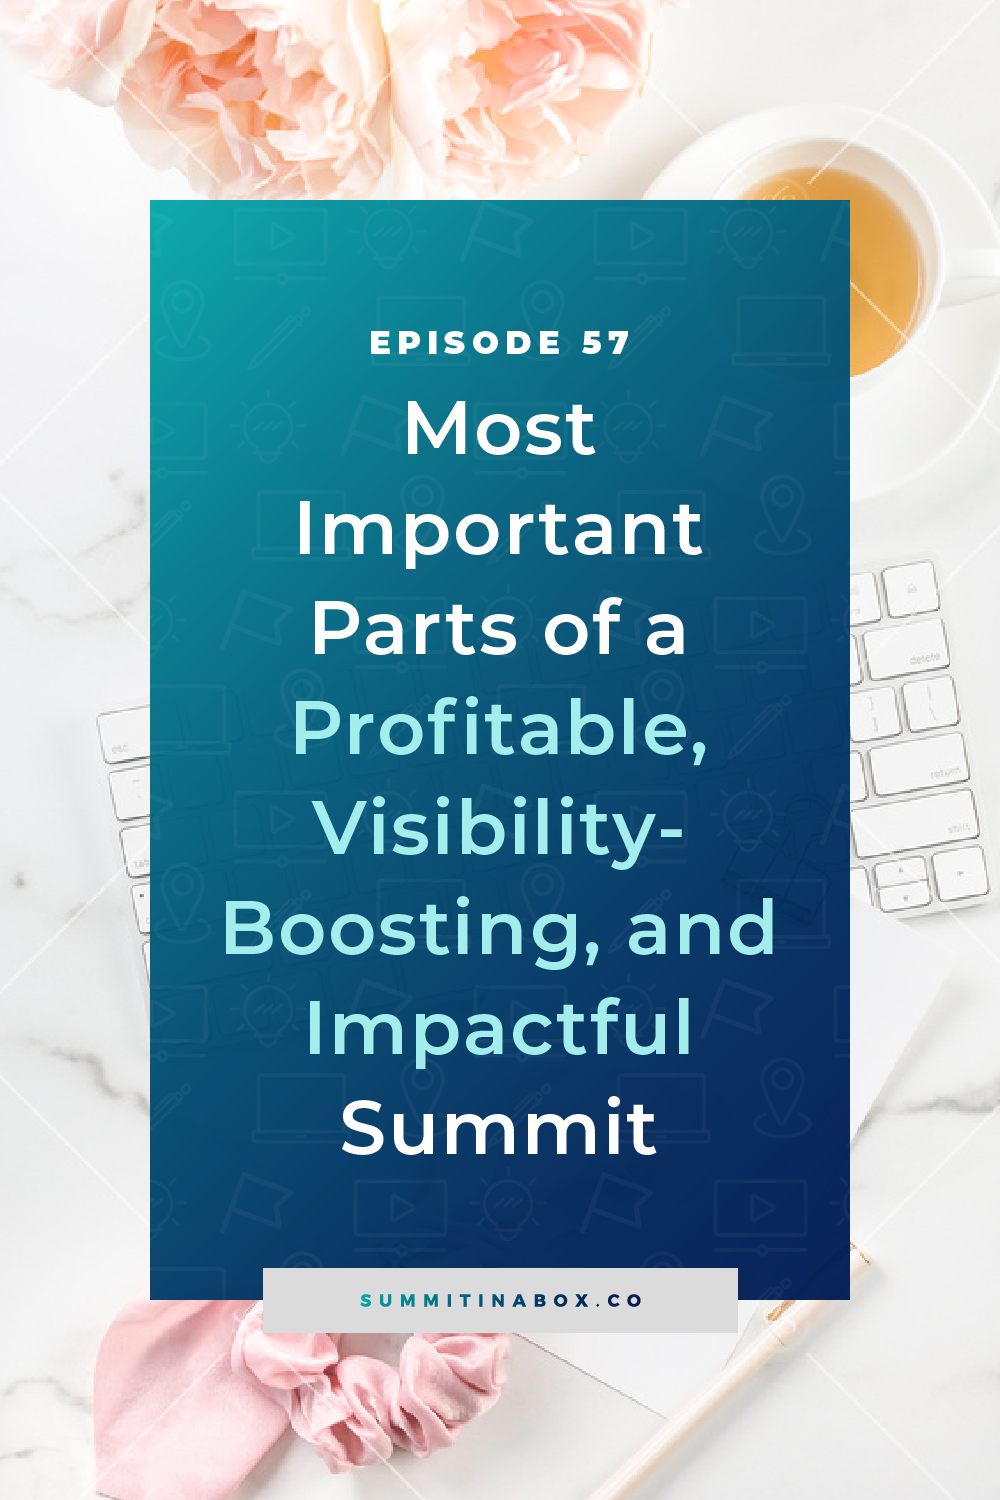 Let's dive deep and talk about the 4 most important parts of your event that will boost your impact, visibility, and lead to a more profitable virtual summit.